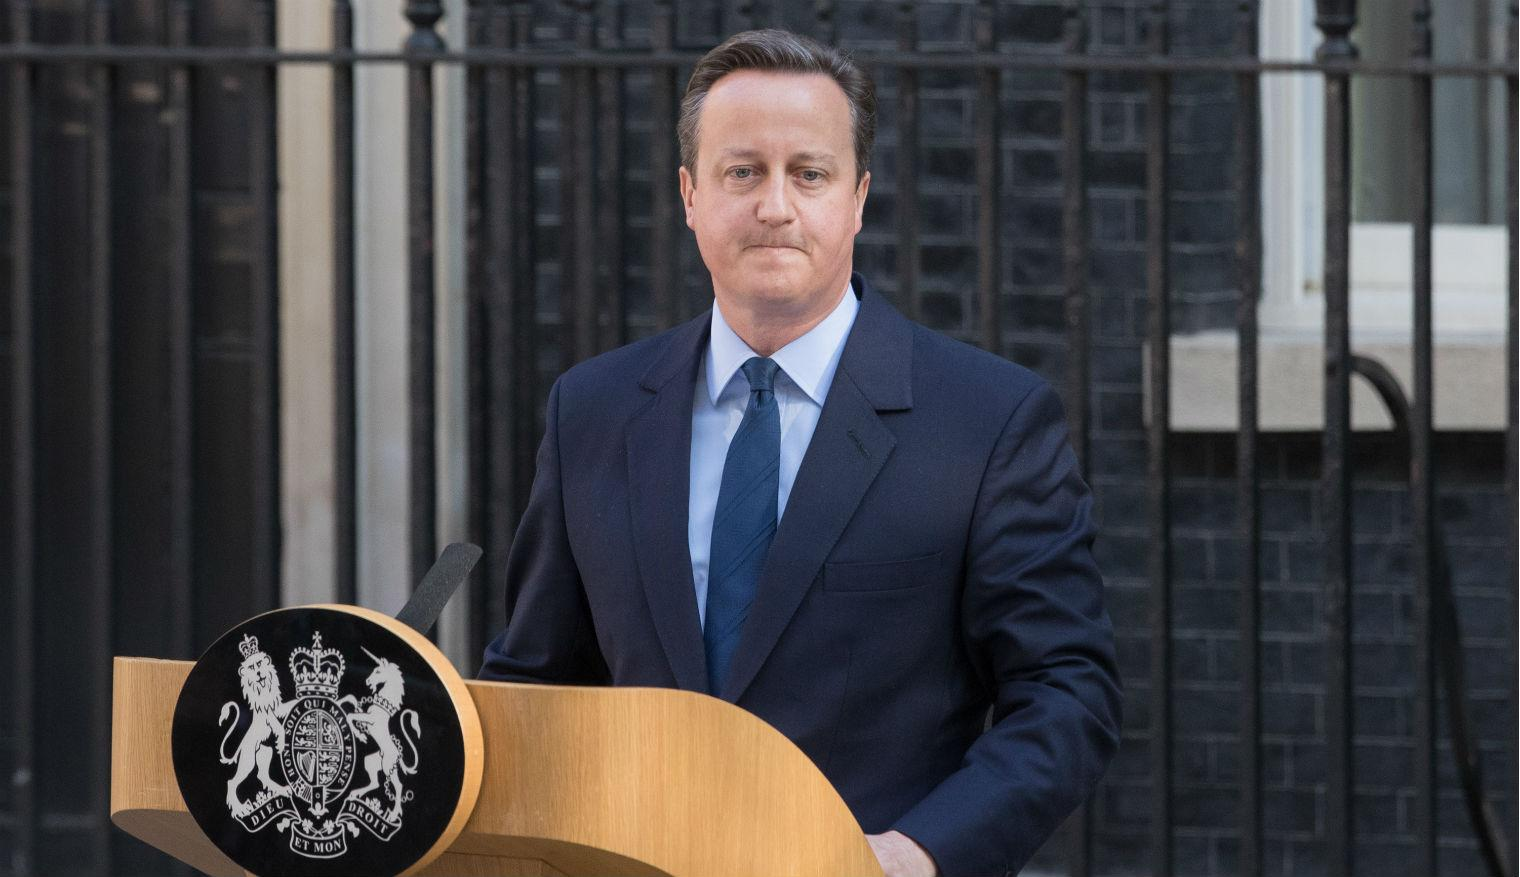 People are really, really hoping this theory about David Cameron and Brexit is true